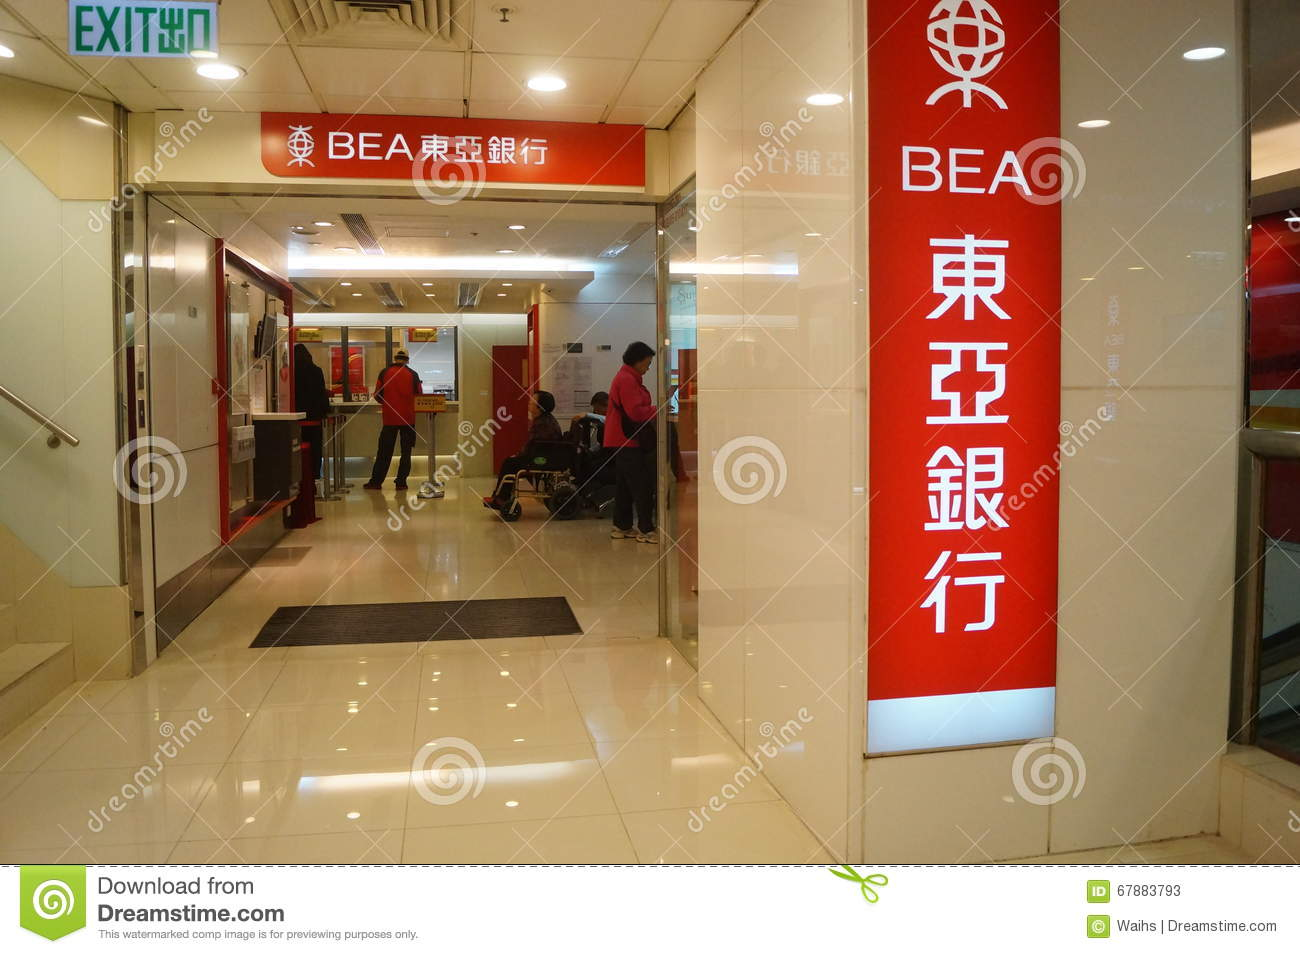 Hong-Kong, China: Banco del Este de Asia